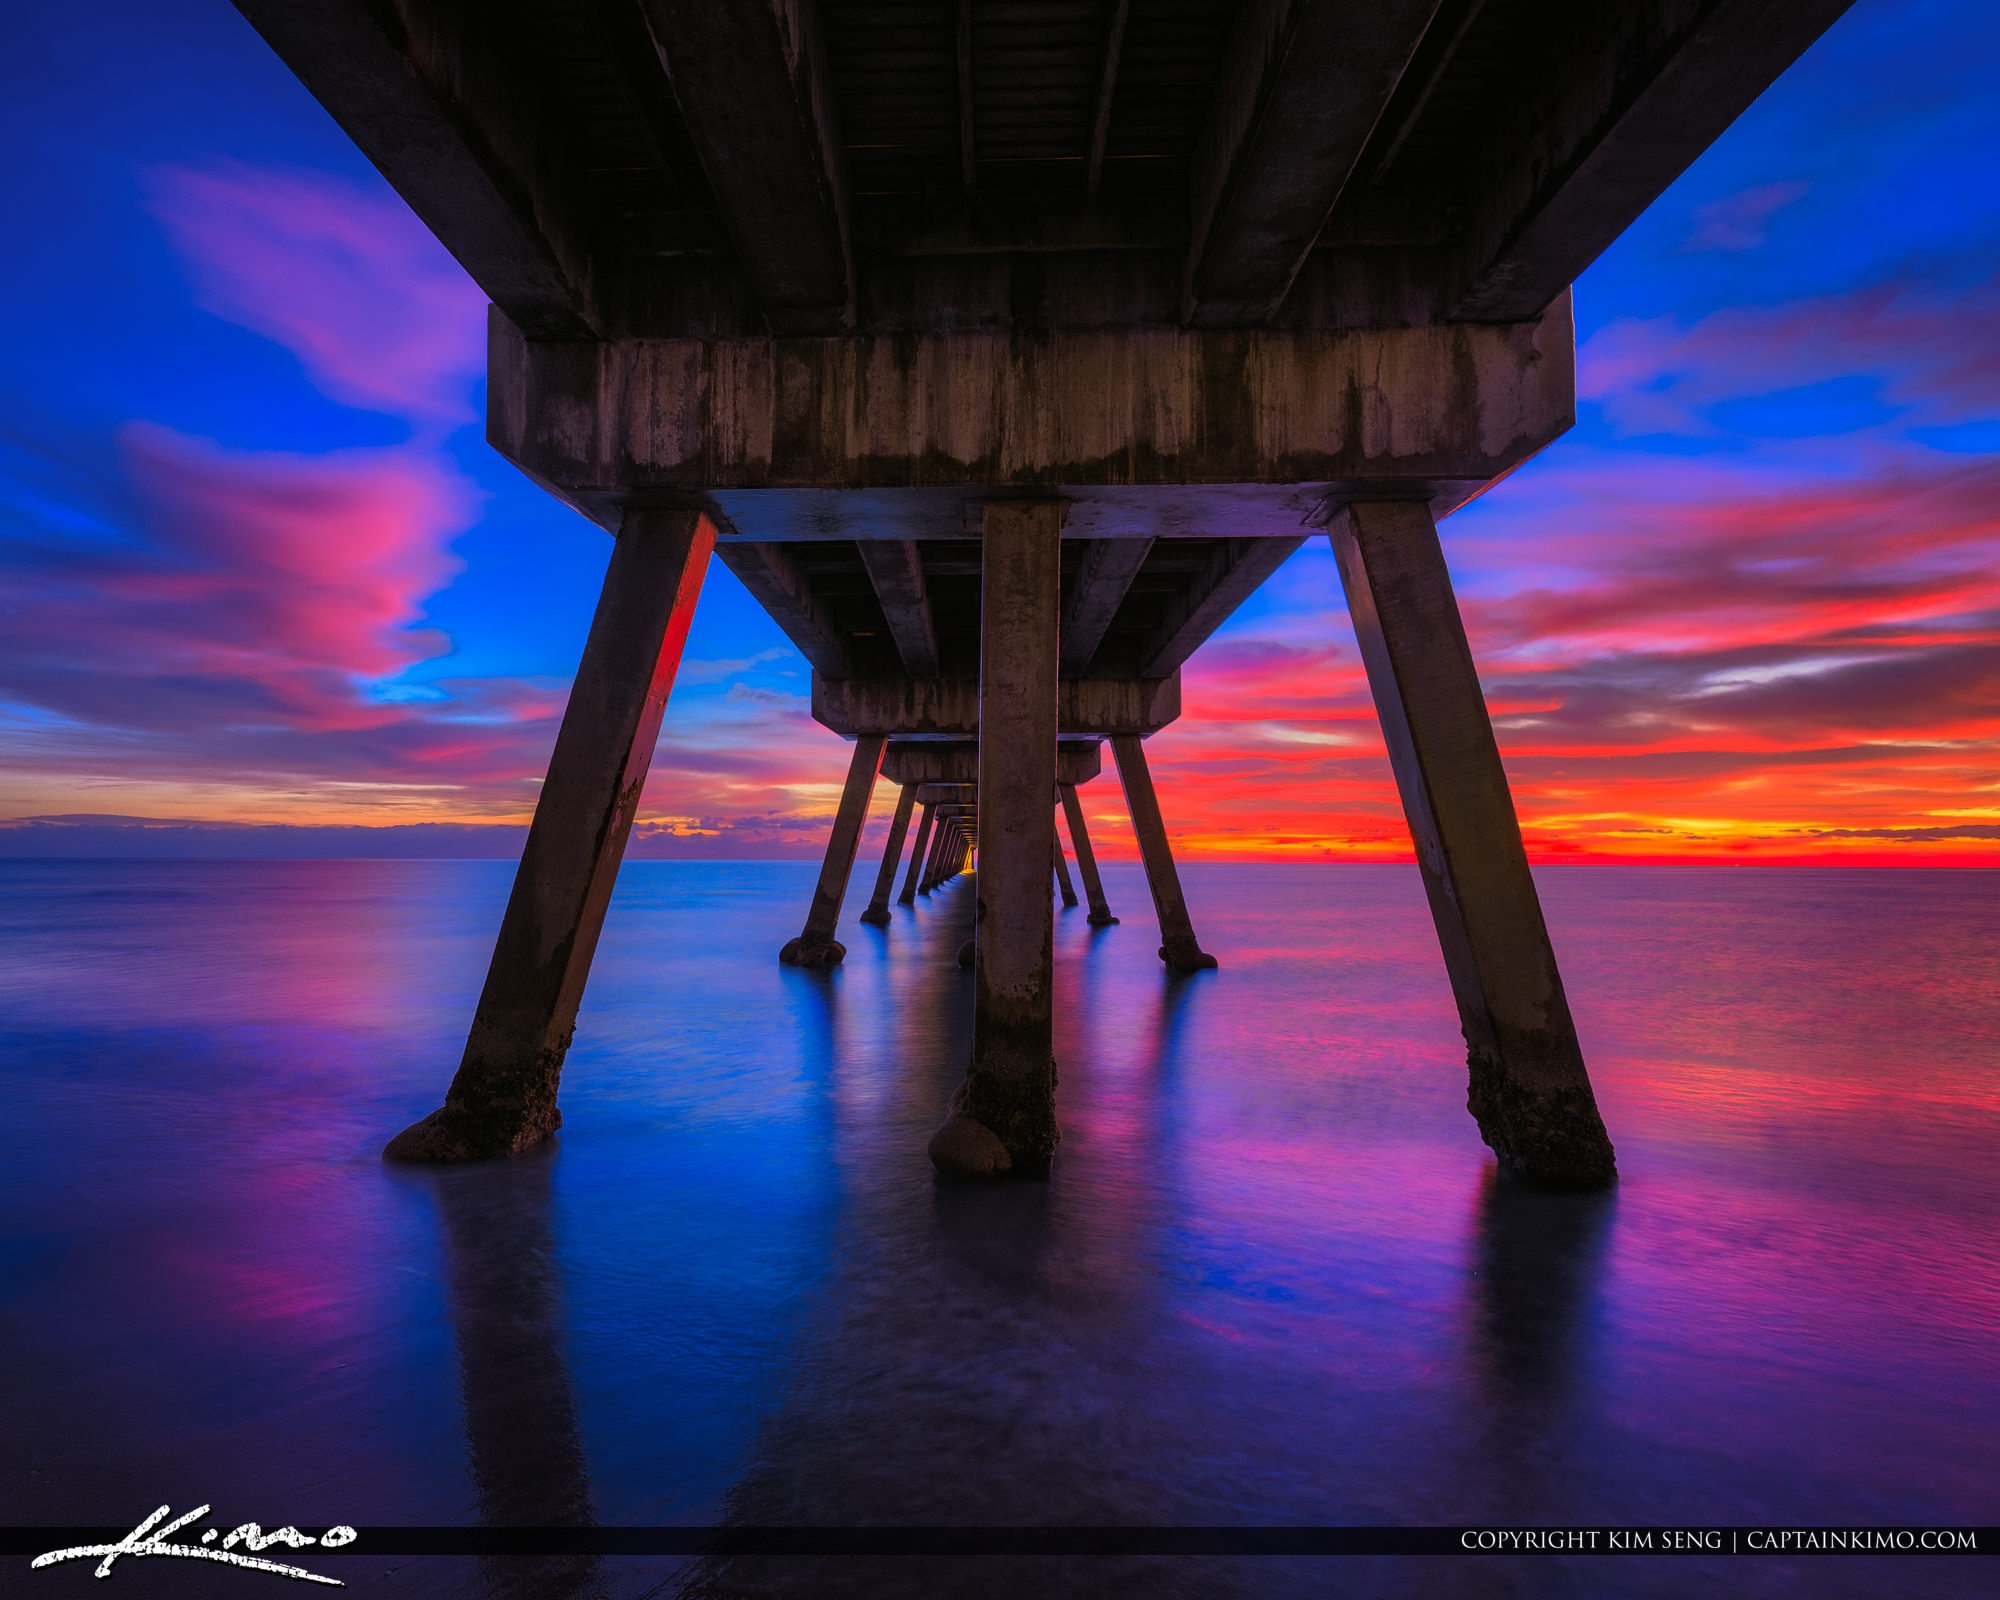 Deerfield Beach International Fishing Pier Underneath the Pier